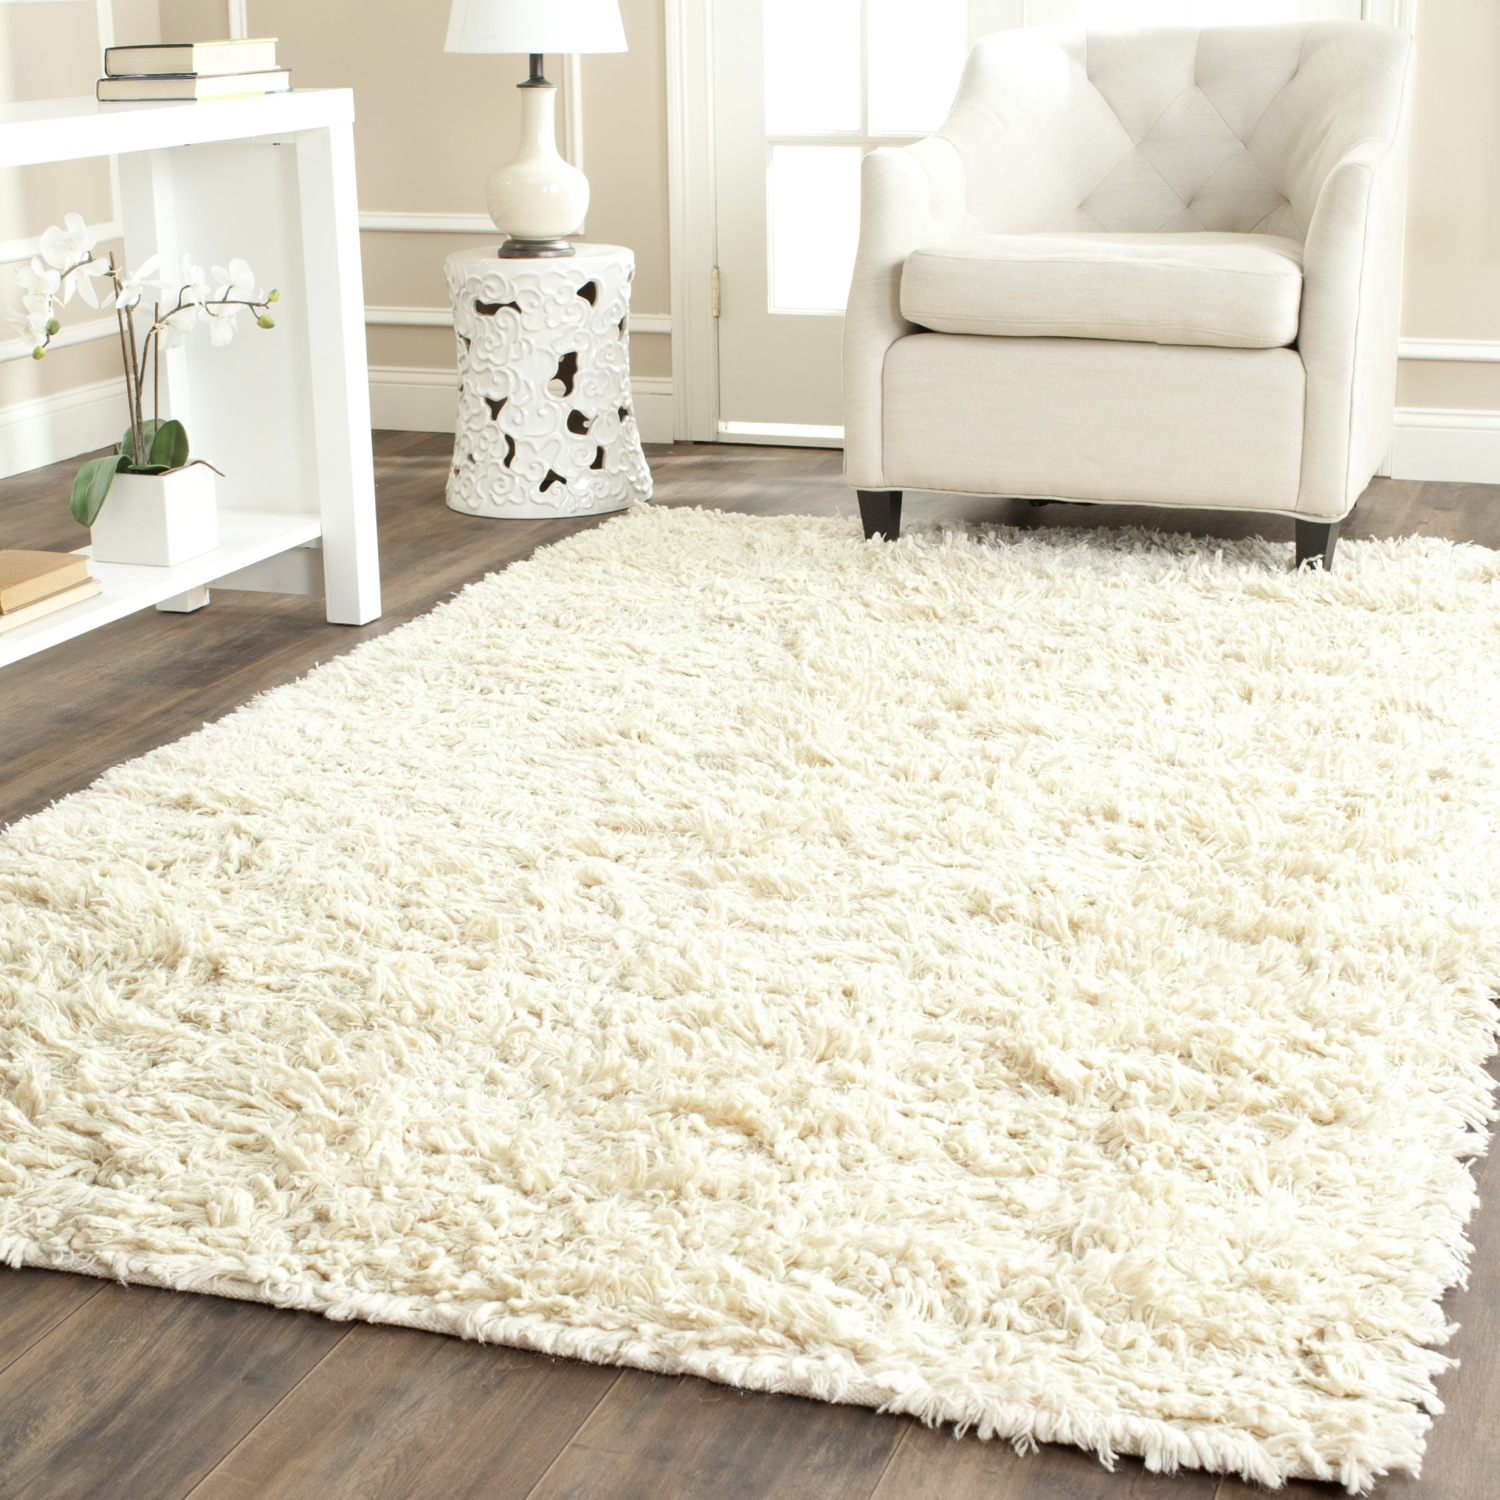 Beautiful Safavieh-Hand-Tufted-IVORY-Plush-Shag-Wool-Area- plush area rugs